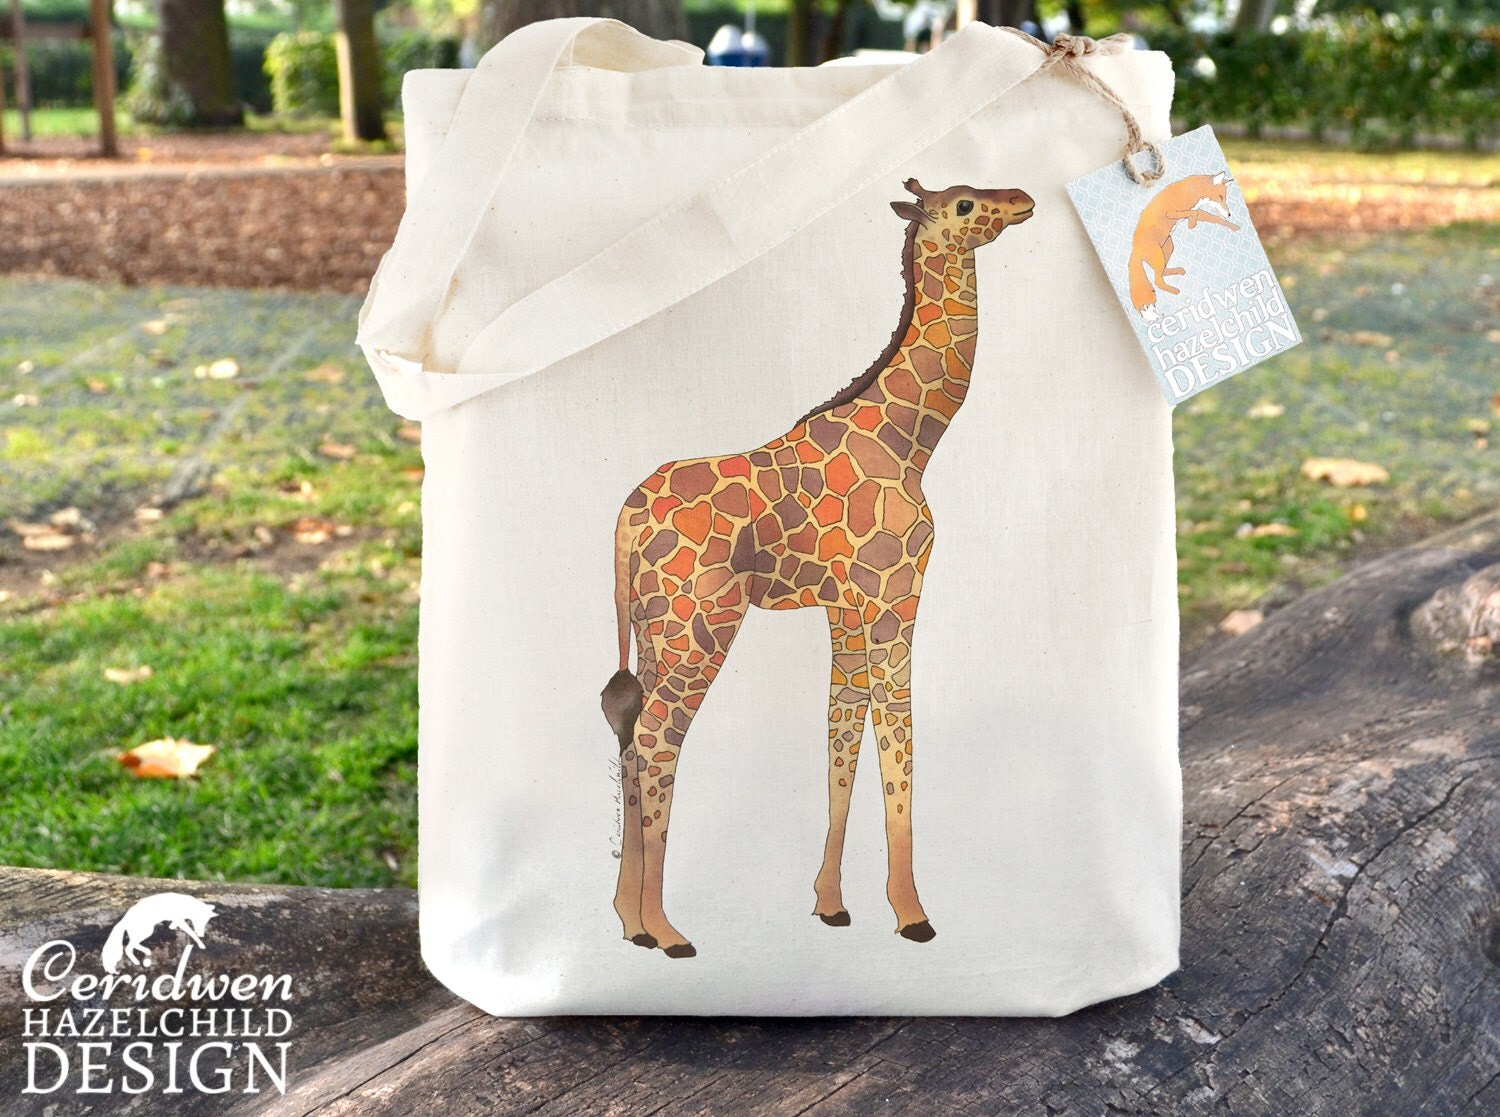 Giraffe Tote Bag Ethically Produced Reusable Shopper Bag Cotton Tote Shopping Bag Eco Tote Bag